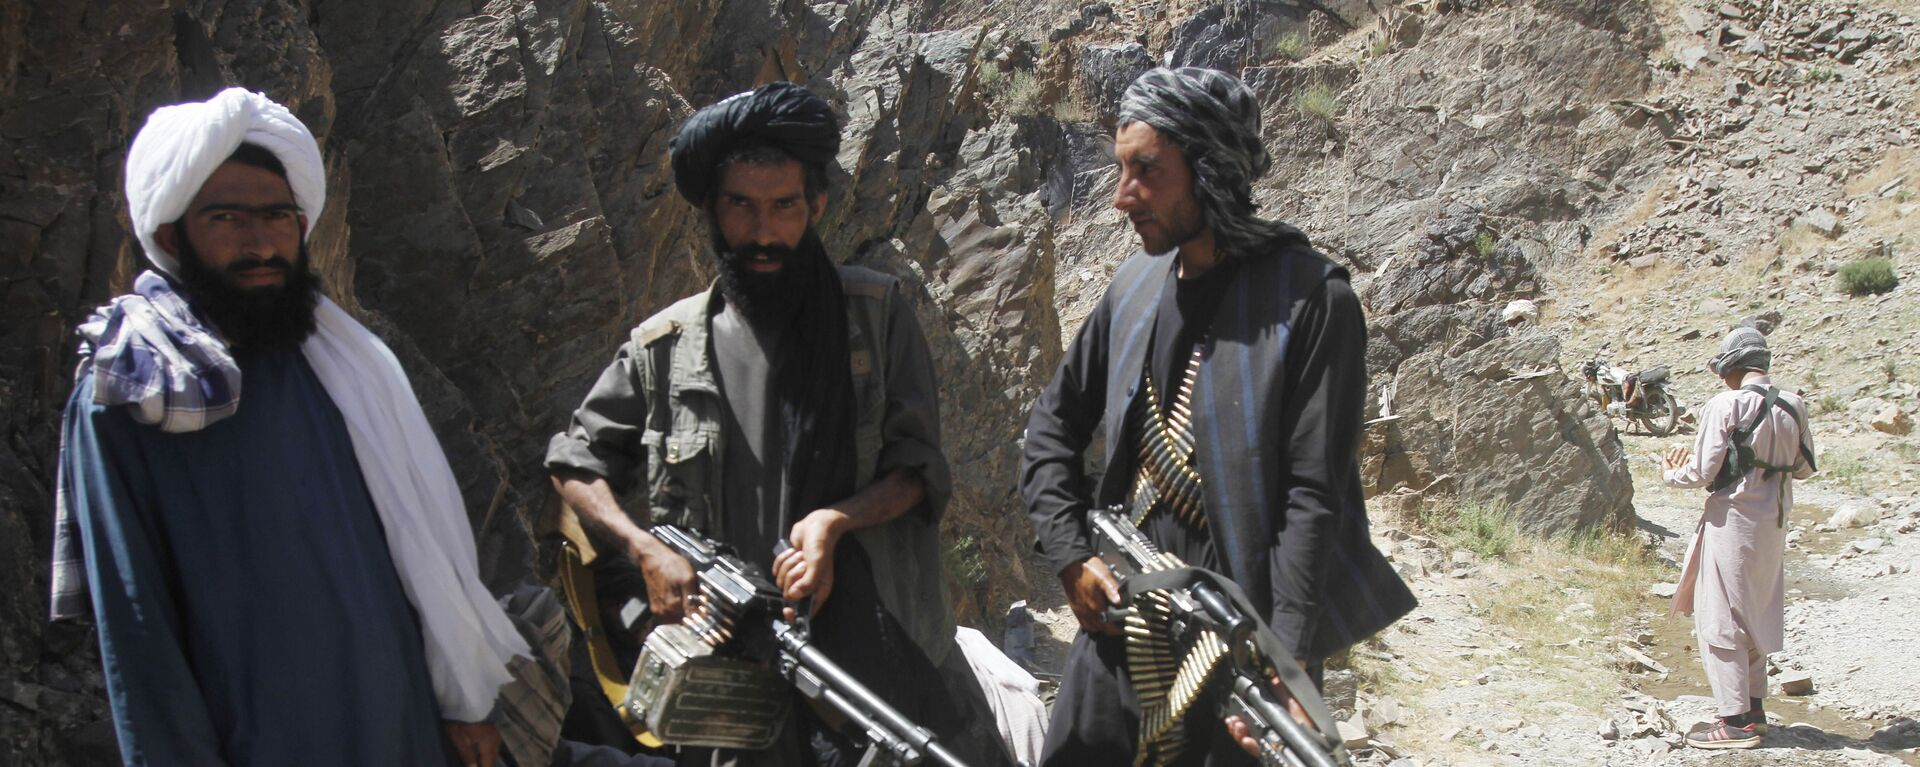 Members of a breakaway faction of the Taliban fighters guard during a patrol in Shindand district of Herat province, Afghanistan (File) - Sputnik Italia, 1920, 13.08.2021